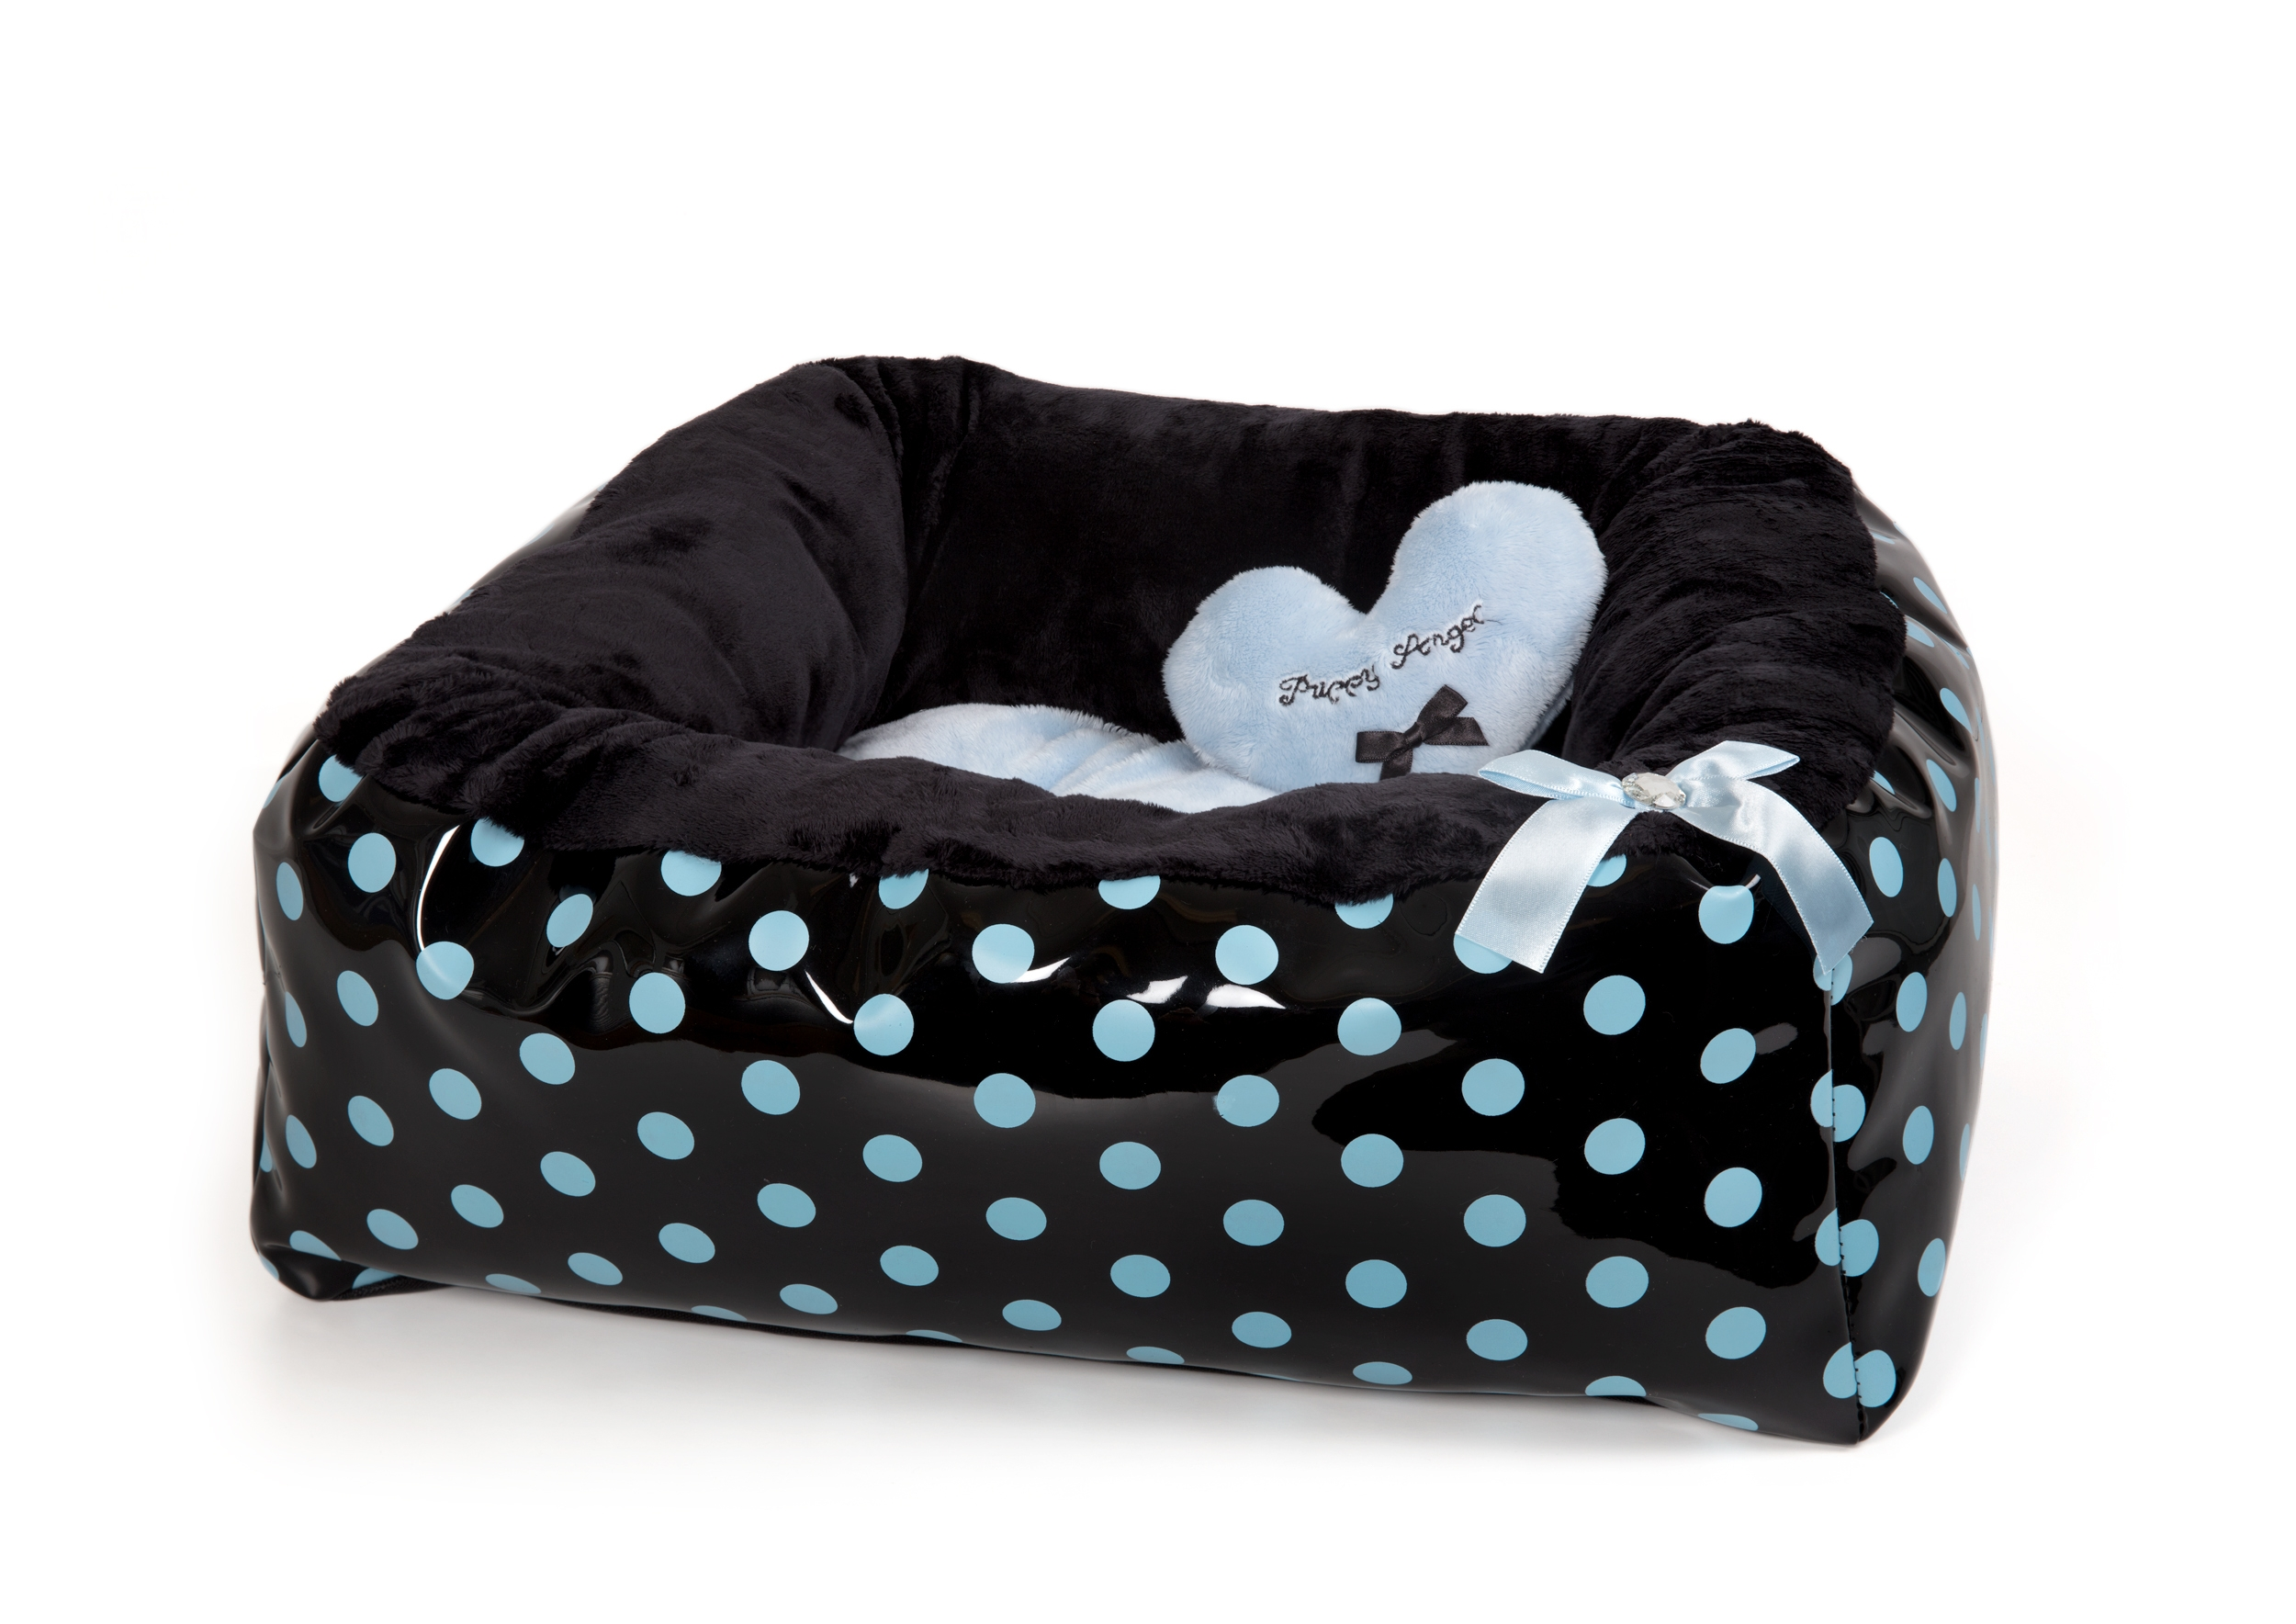 Polkadot Ease Bed - Blue